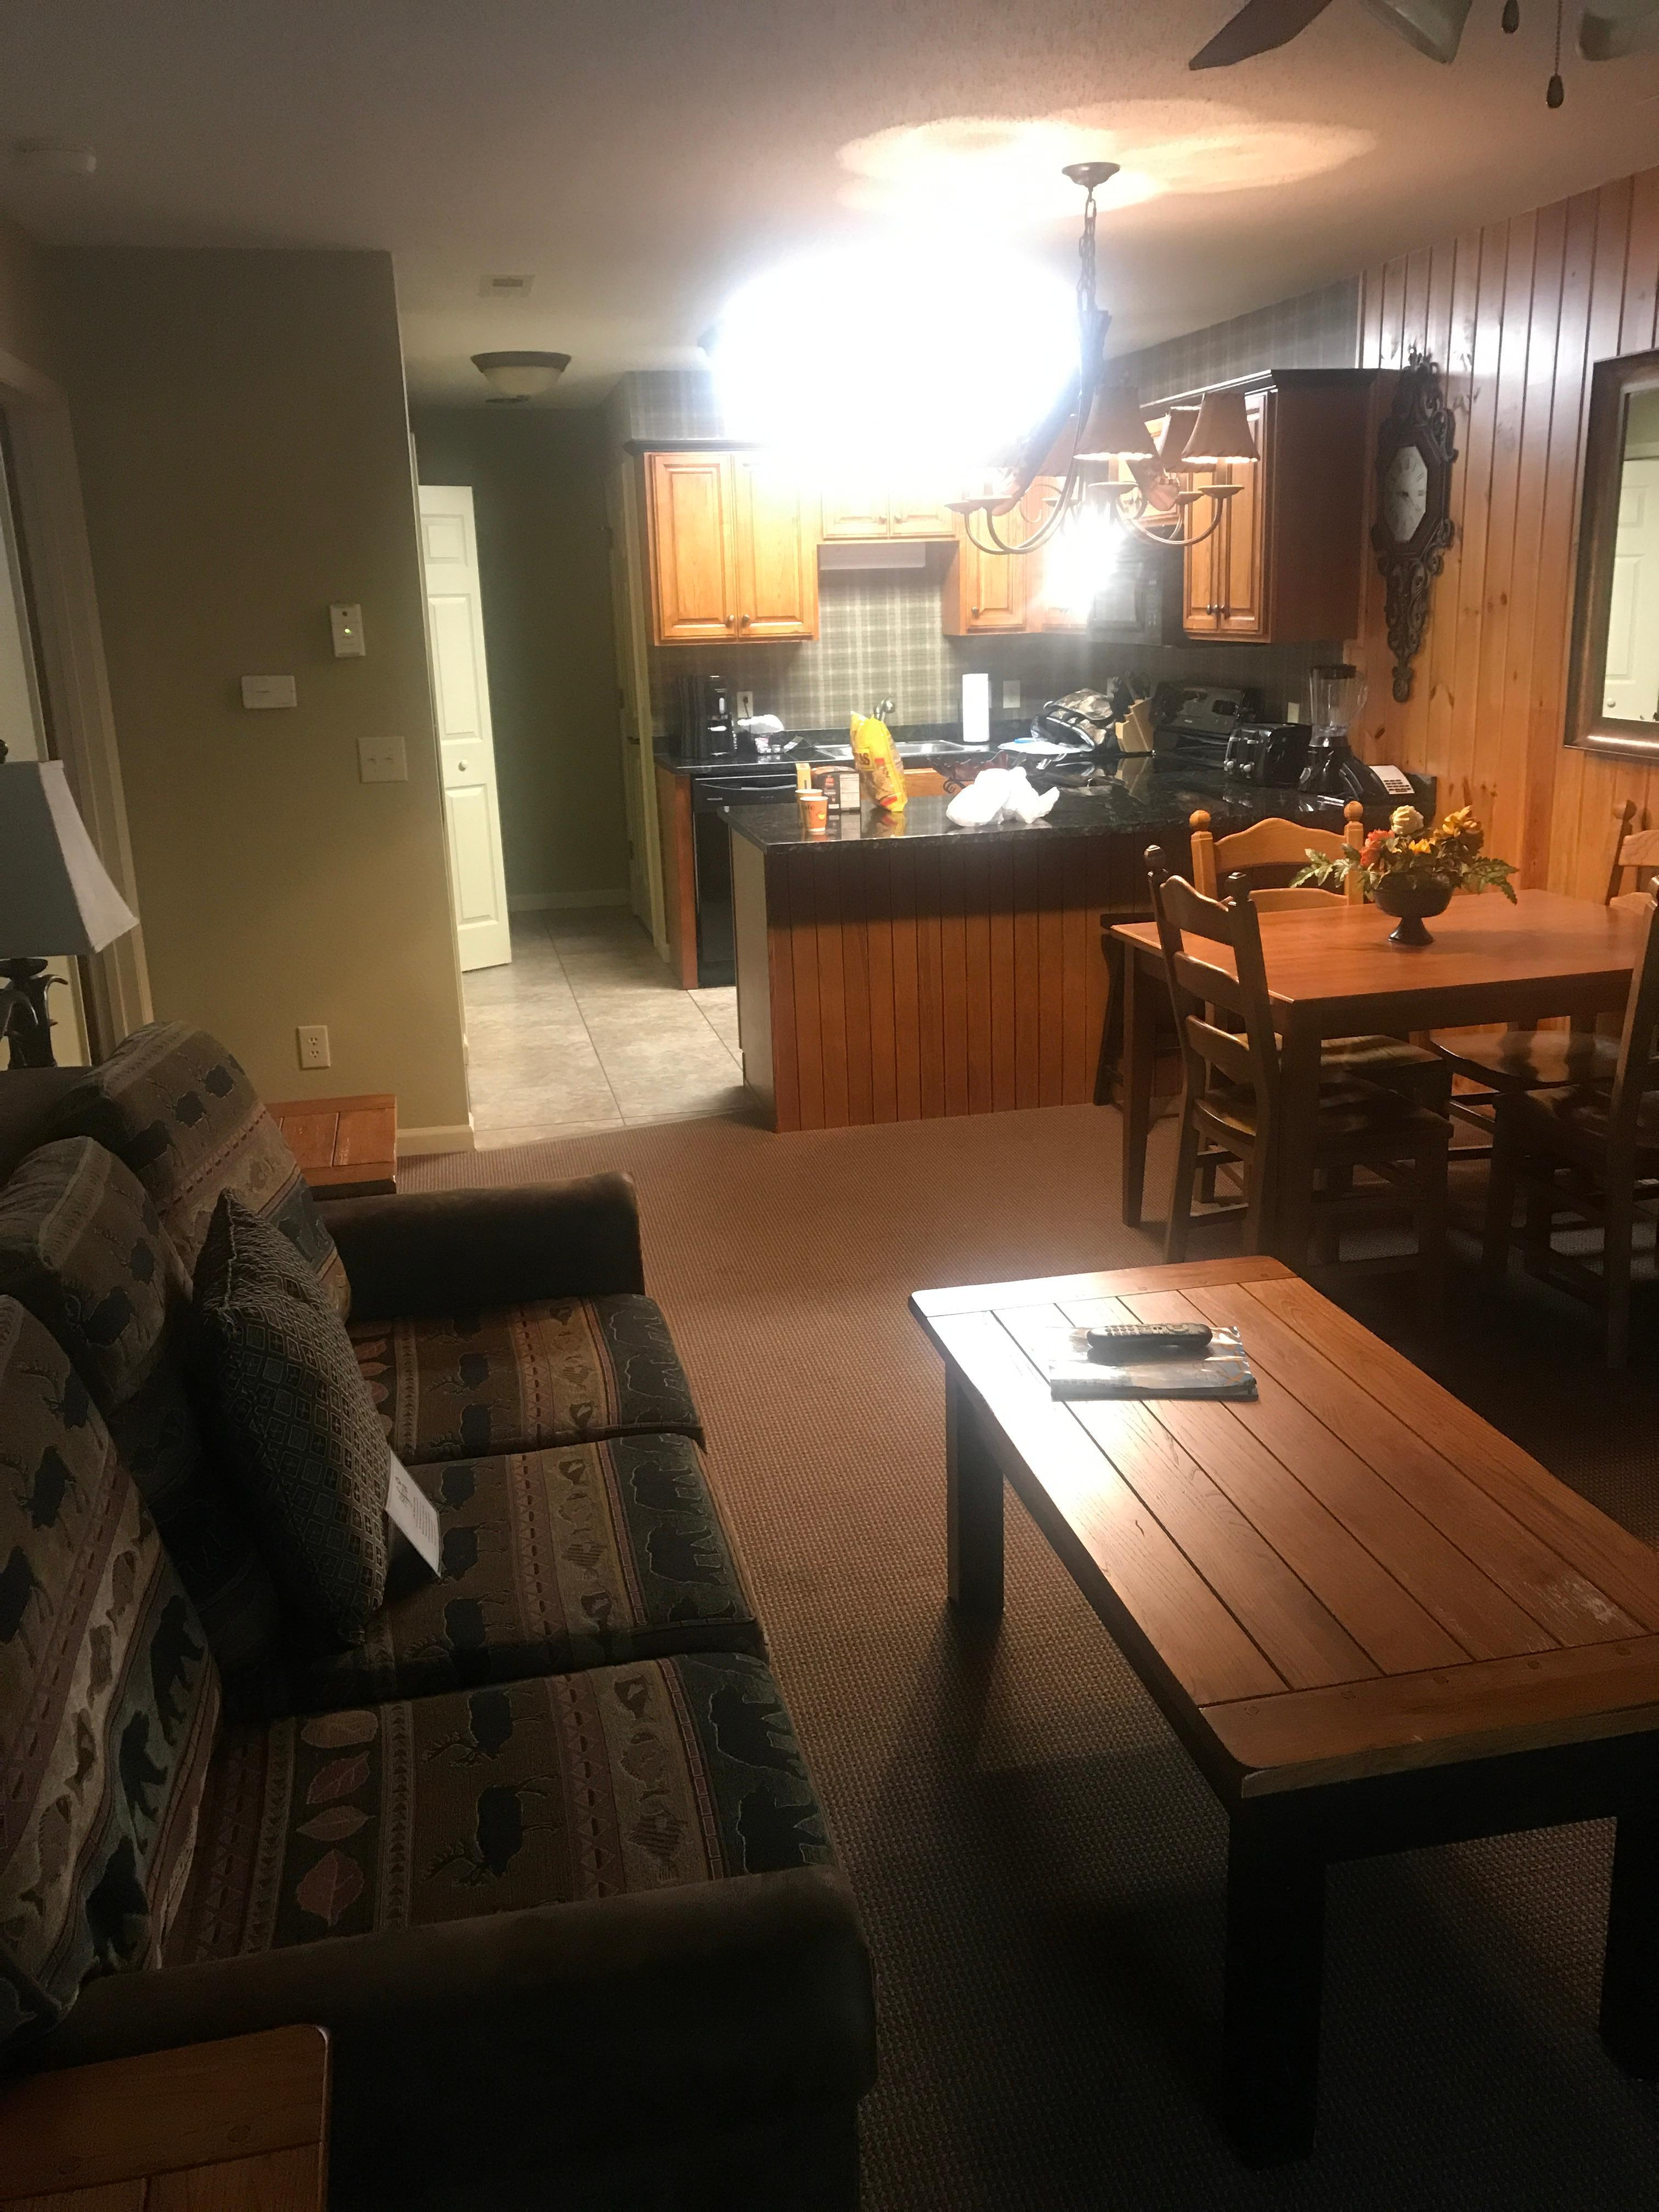 Cozy living room with kitchen